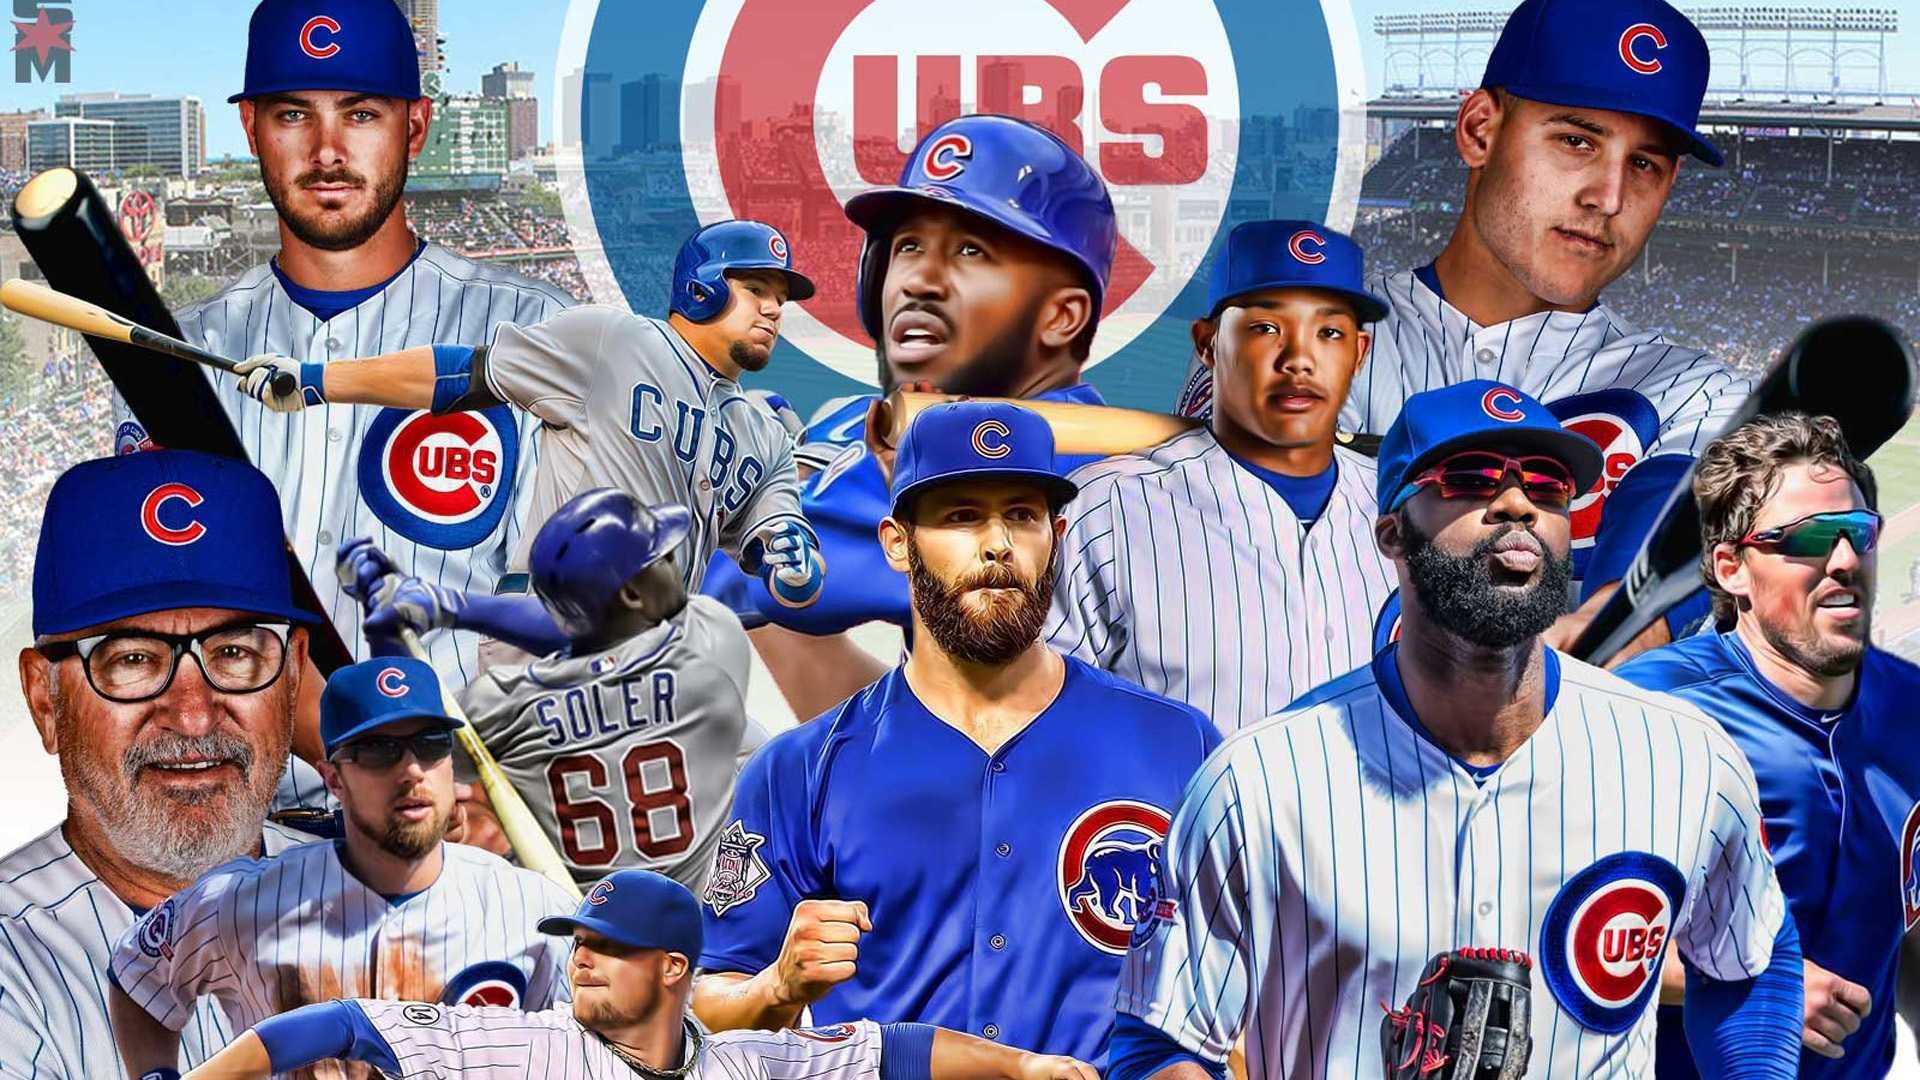 1920x1080 Cubs to try the repeat. Photo by http://wallsdesk.com